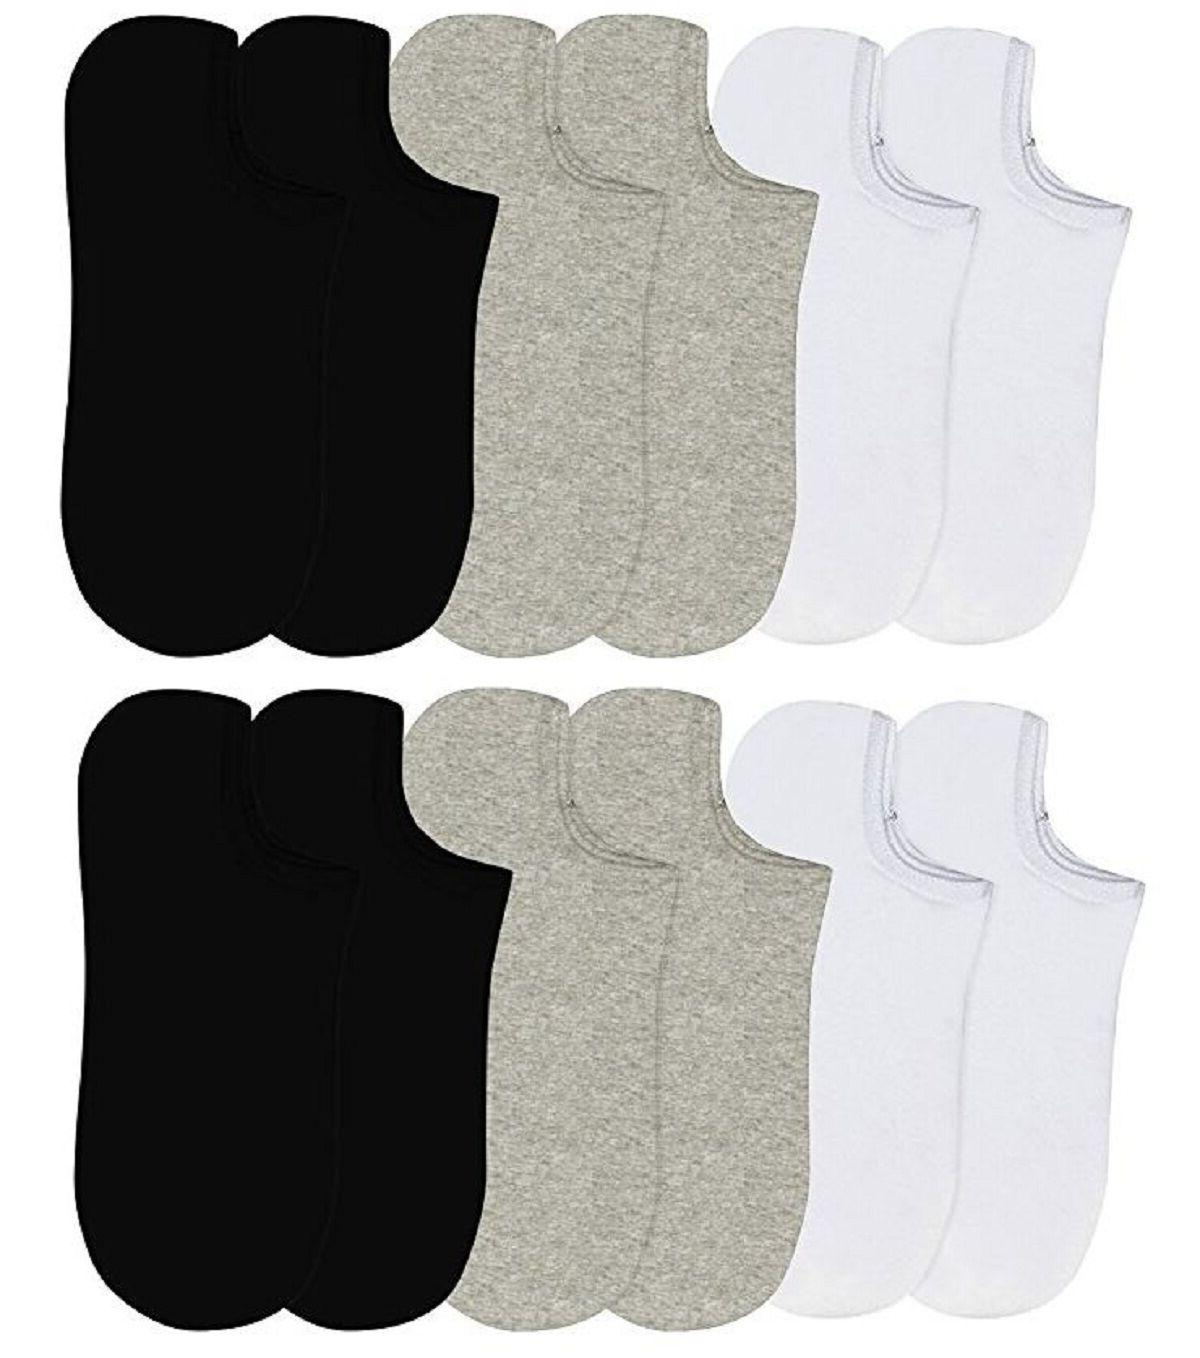 6 12 packs ankle cool socks sport